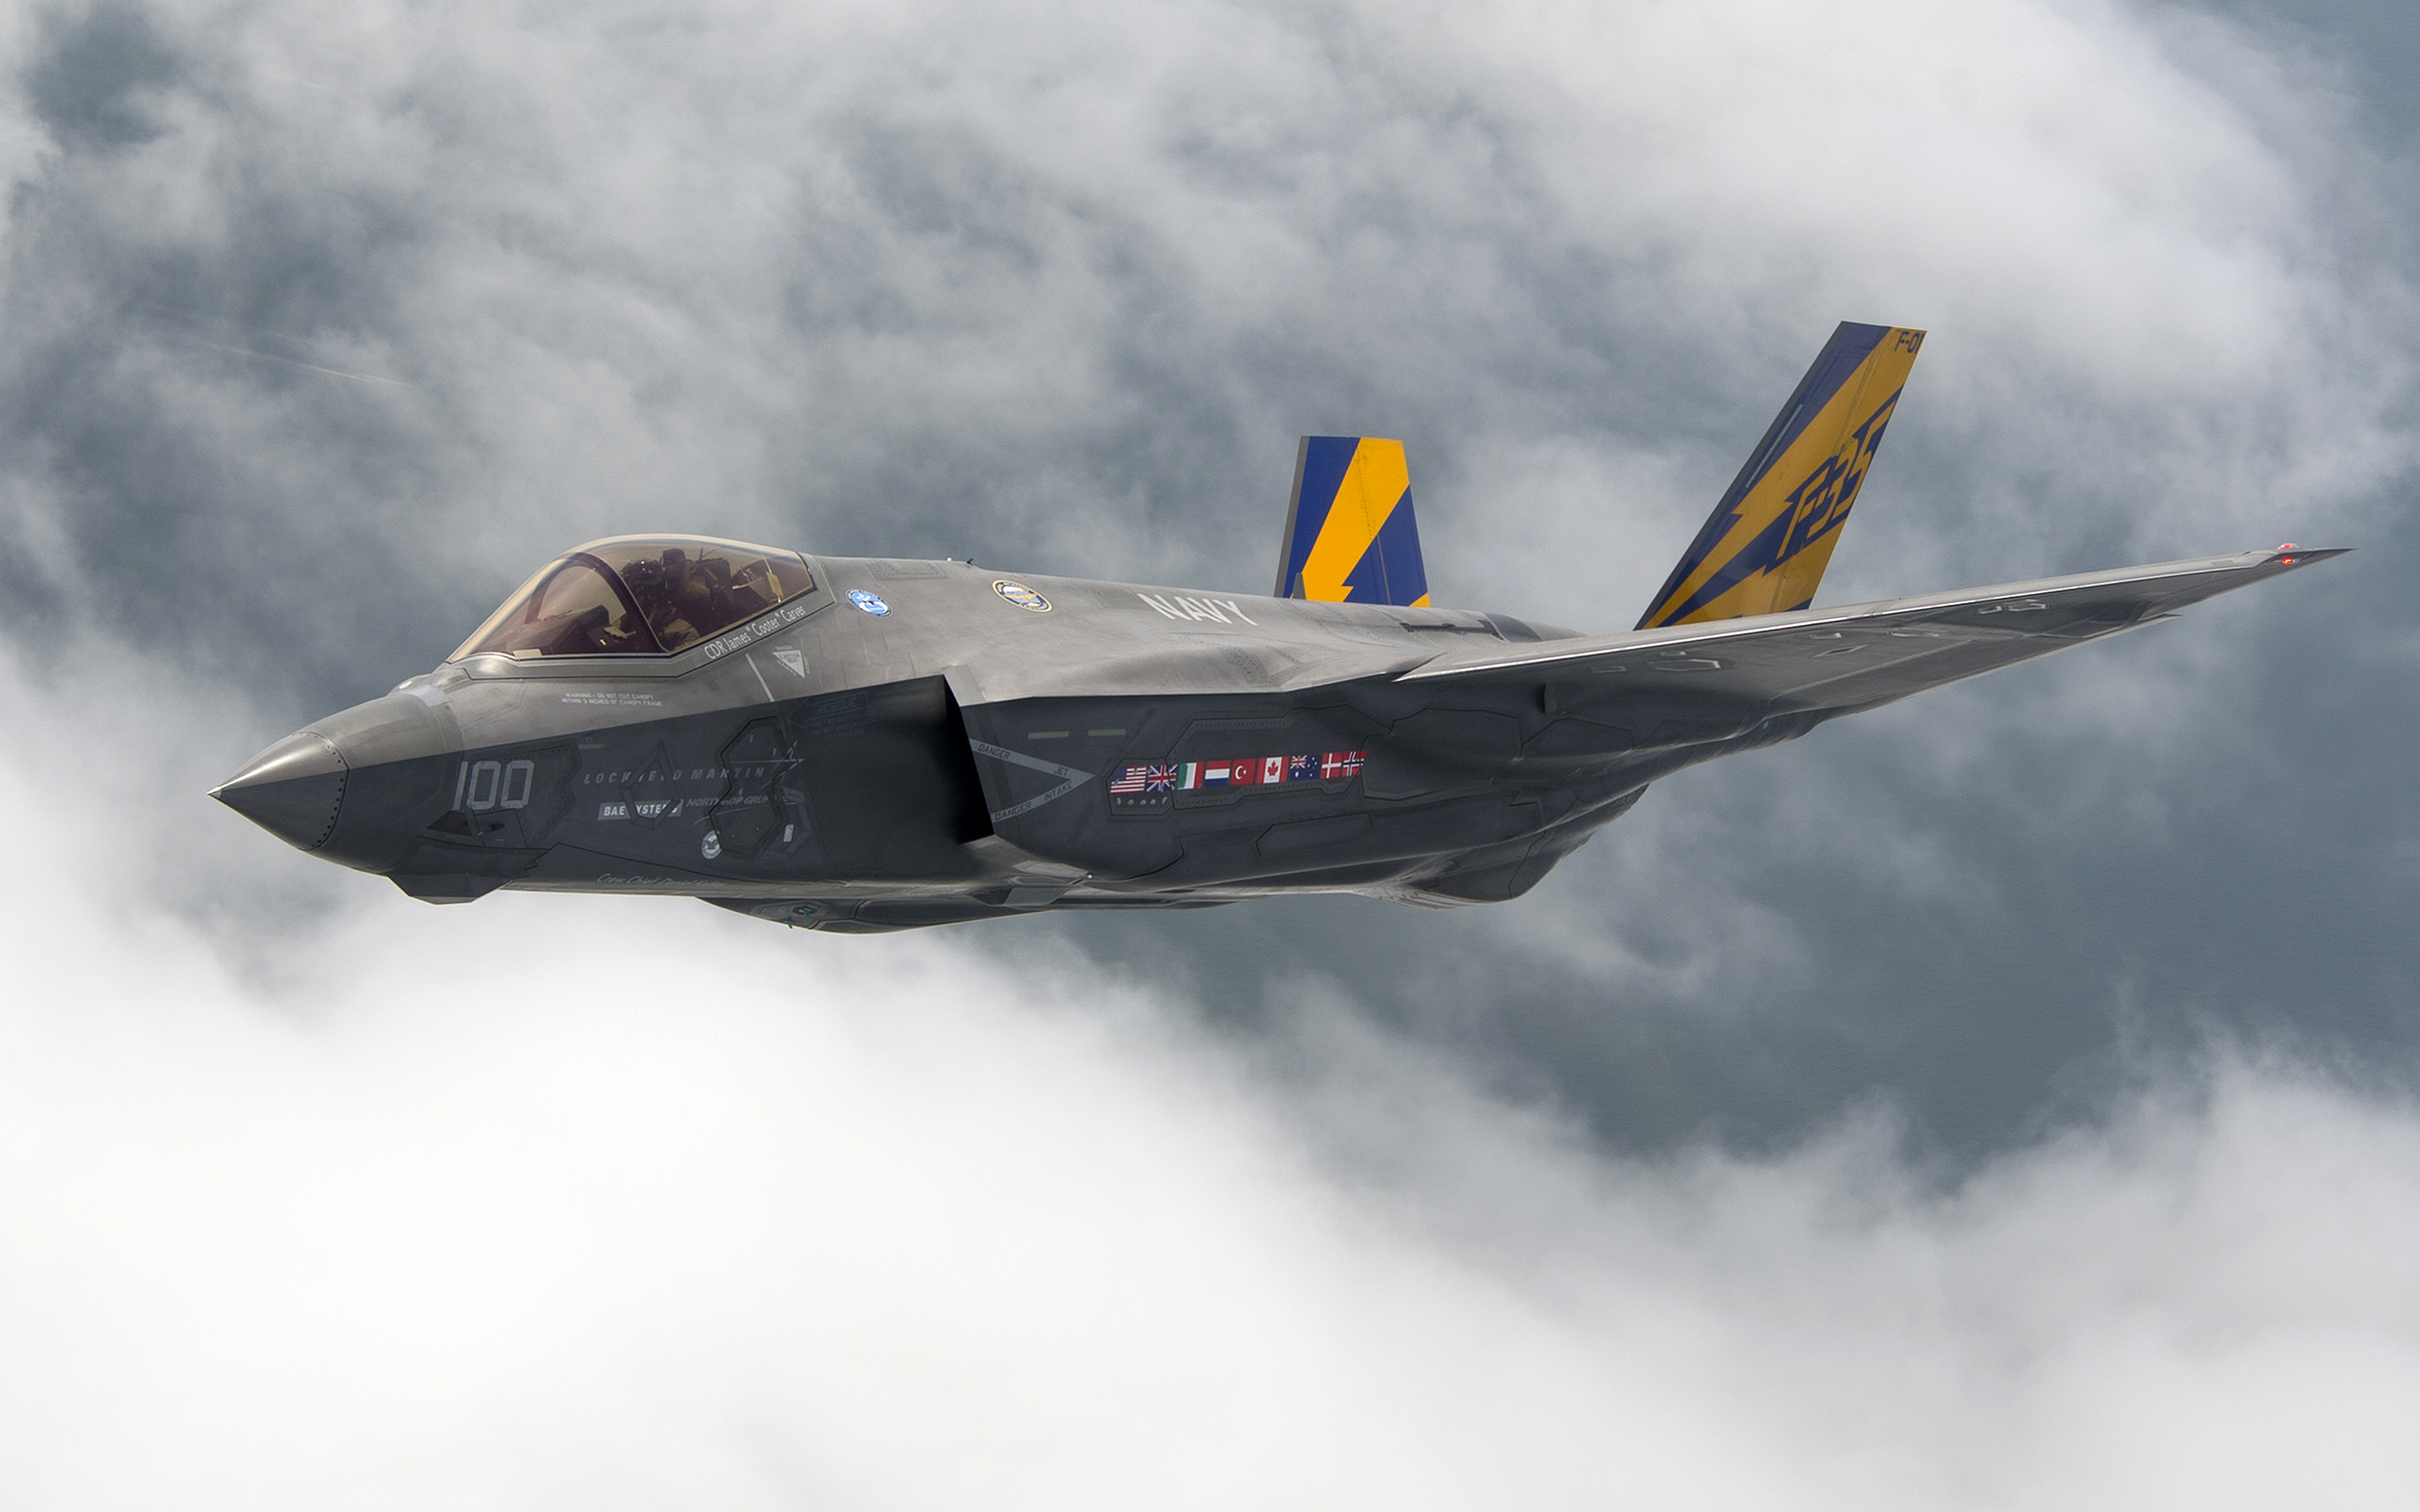 Lockheed Martin F 35 Lightning II Stealth Fighter575507207 - Lockheed Martin F 35 Lightning II Stealth Fighter - Stealth, Soldiers, Martin, Lockheed, Lightning, Fighter